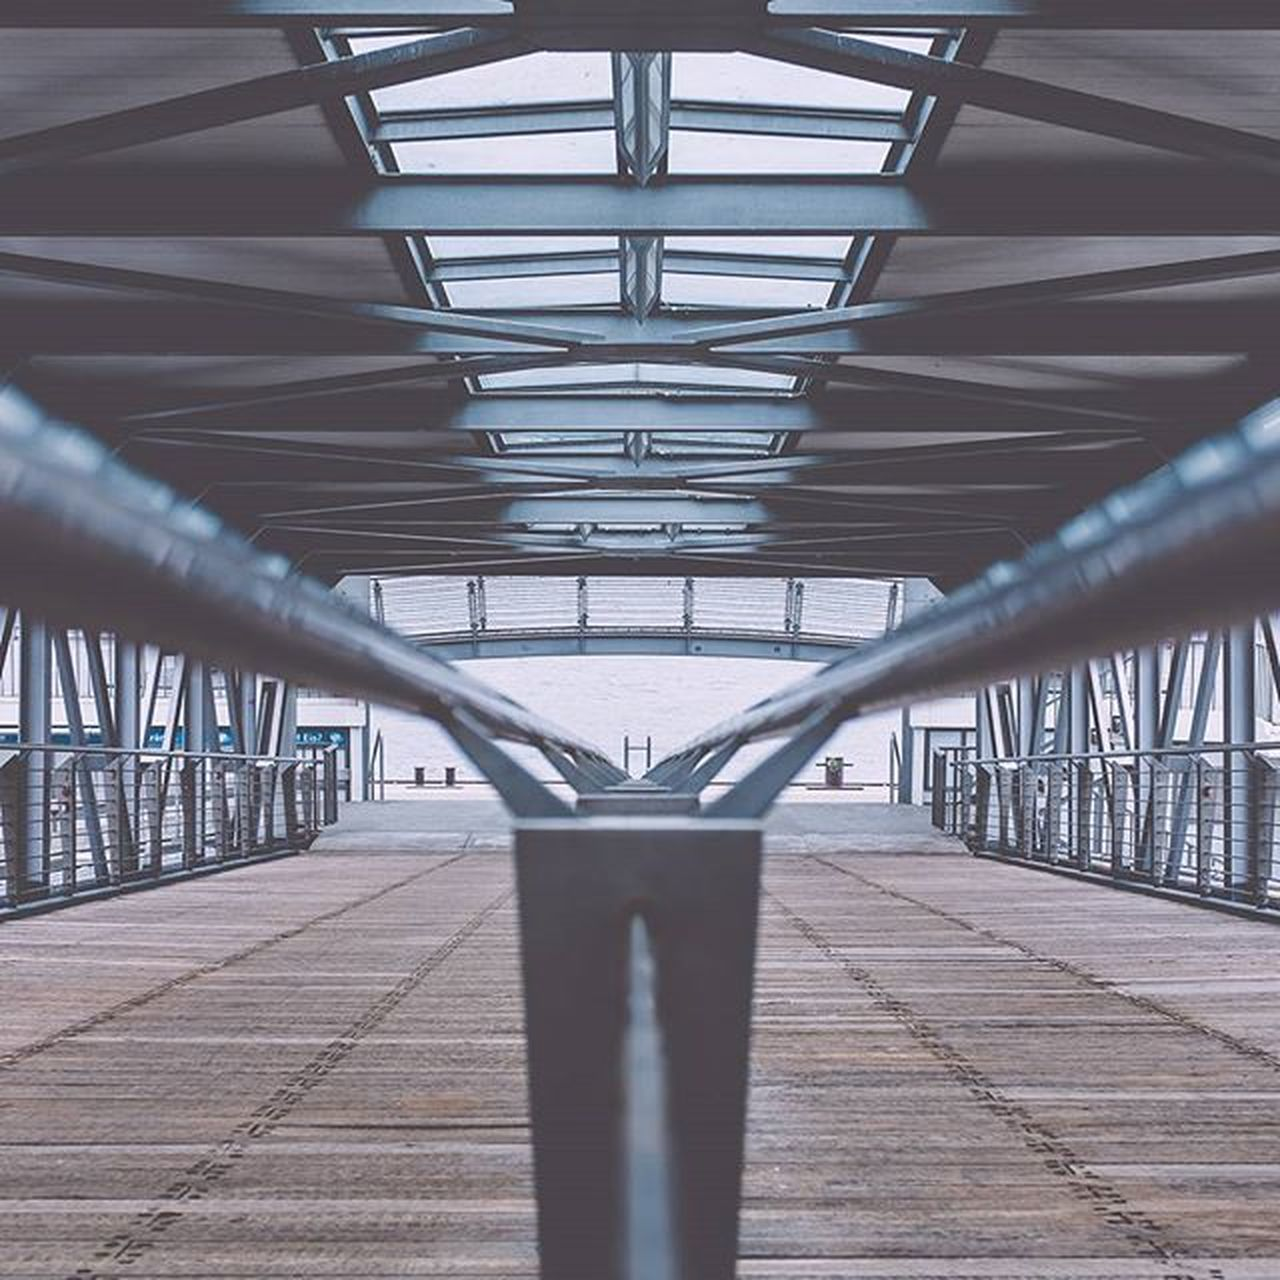 bridge - man made structure, metal, architecture, built structure, no people, architectural column, steel, indoors, day, city